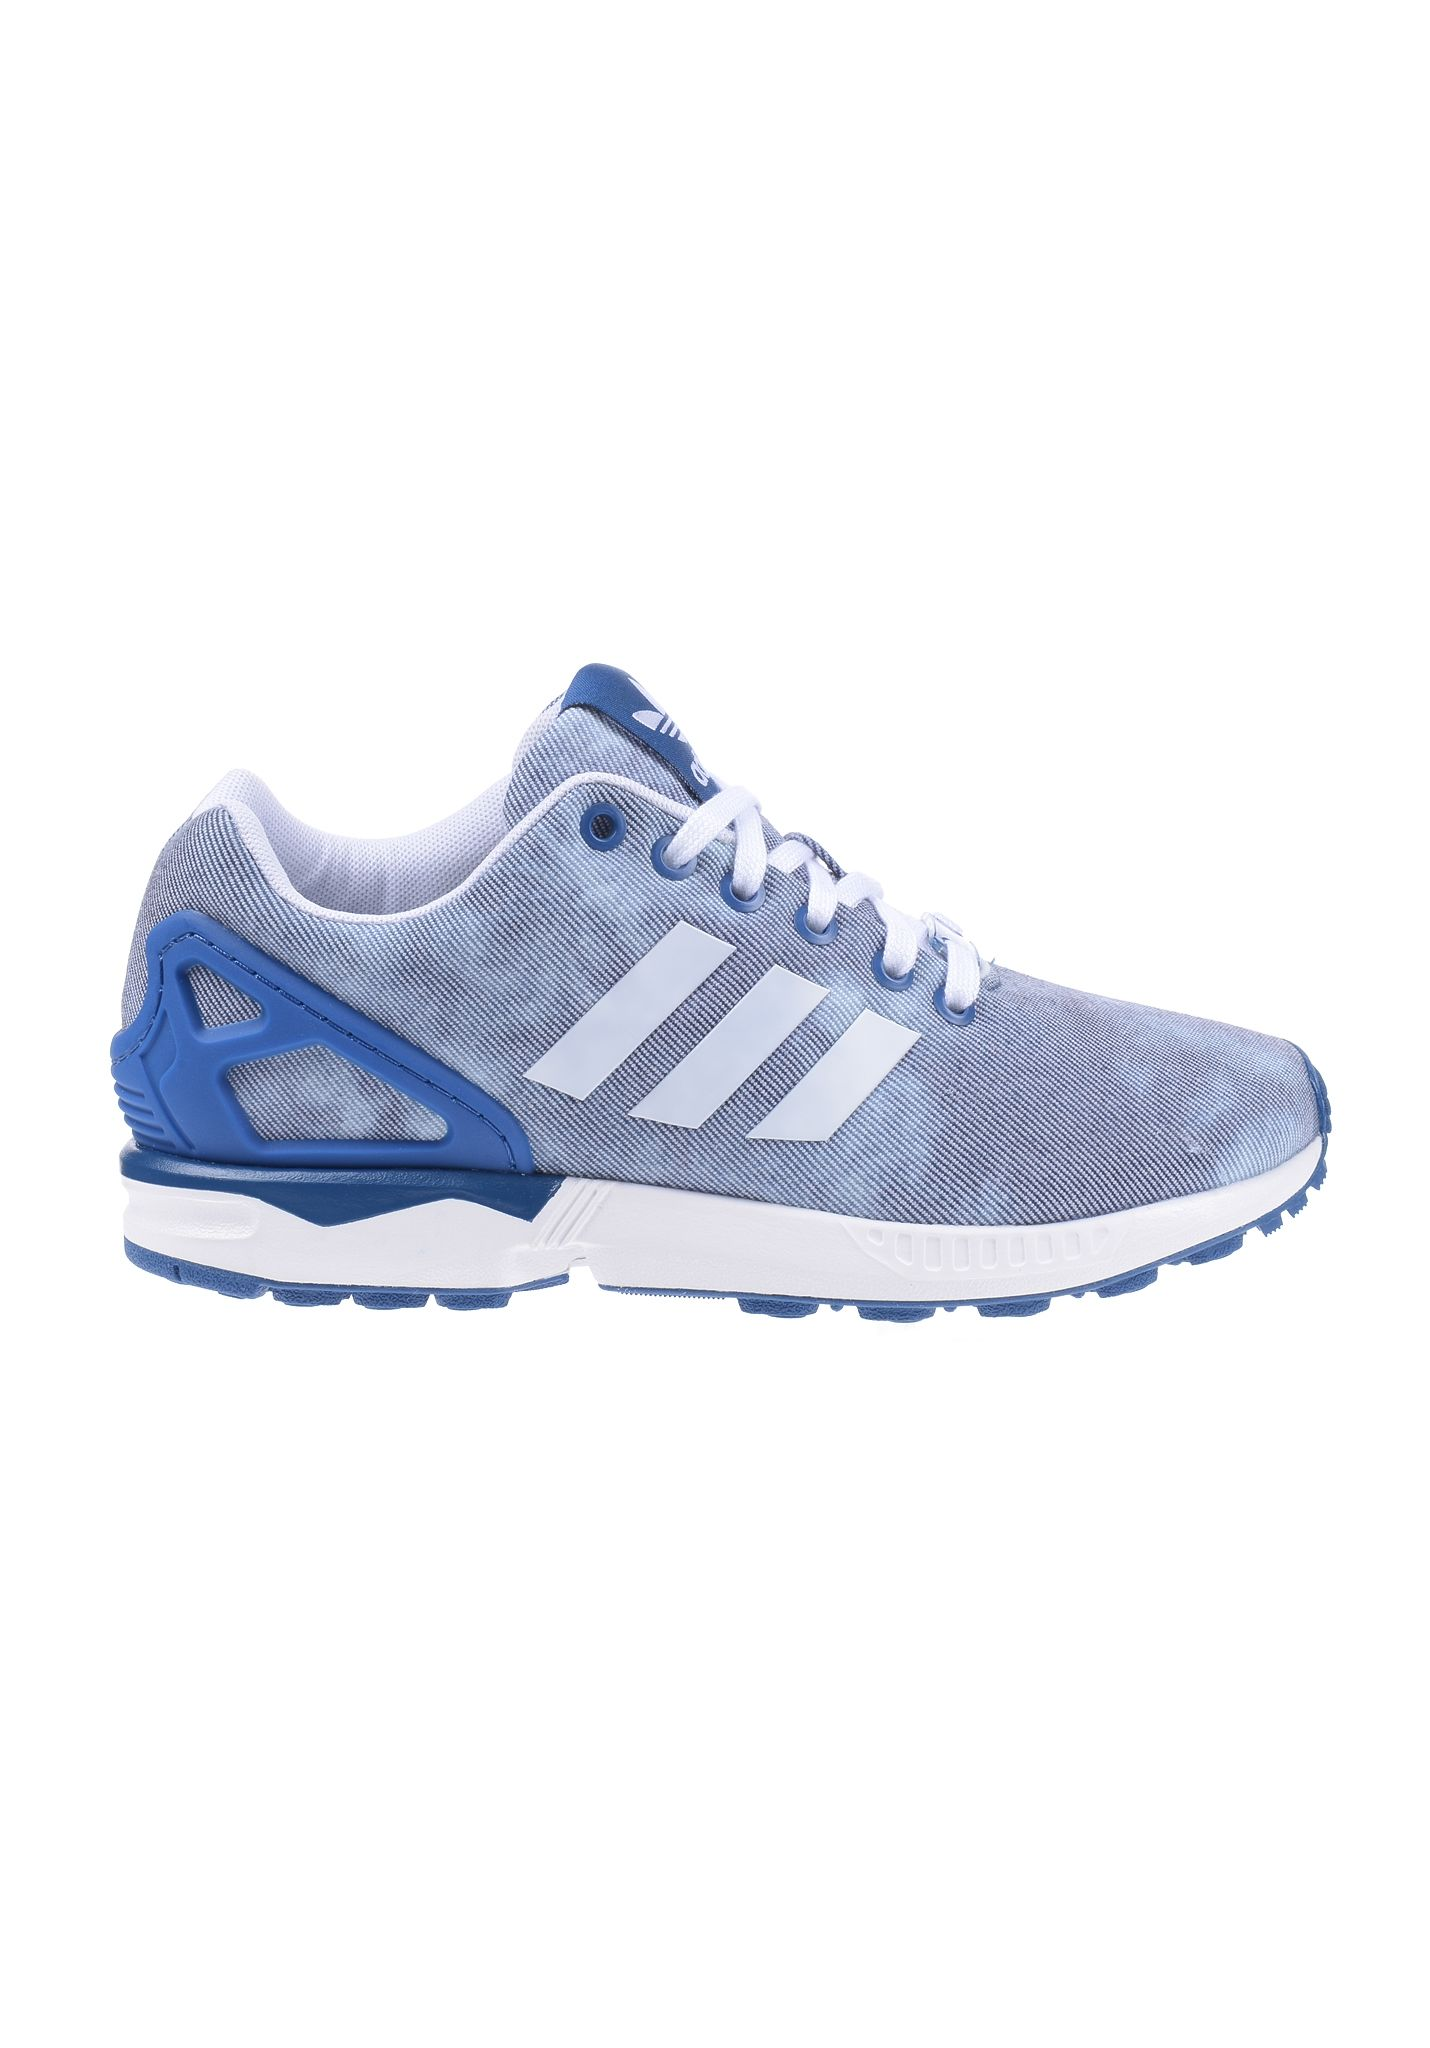 adidas zx flux blau damen die liga der aussergewoehnlichen. Black Bedroom Furniture Sets. Home Design Ideas